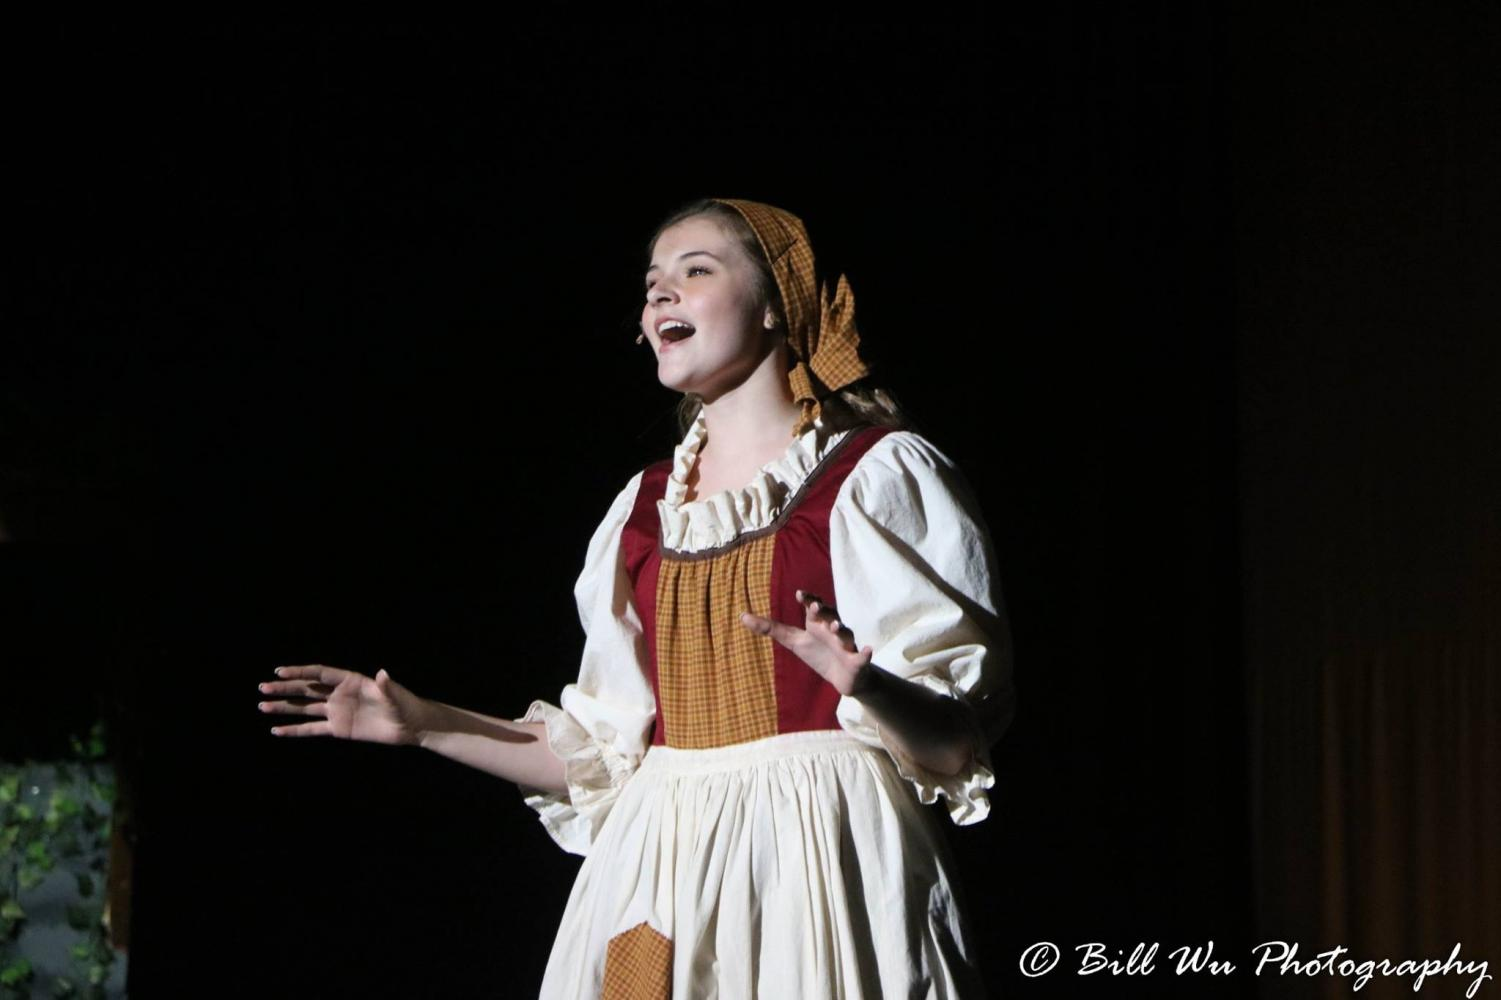 Heather Kirschner plays Cinderella in the winter musical production of